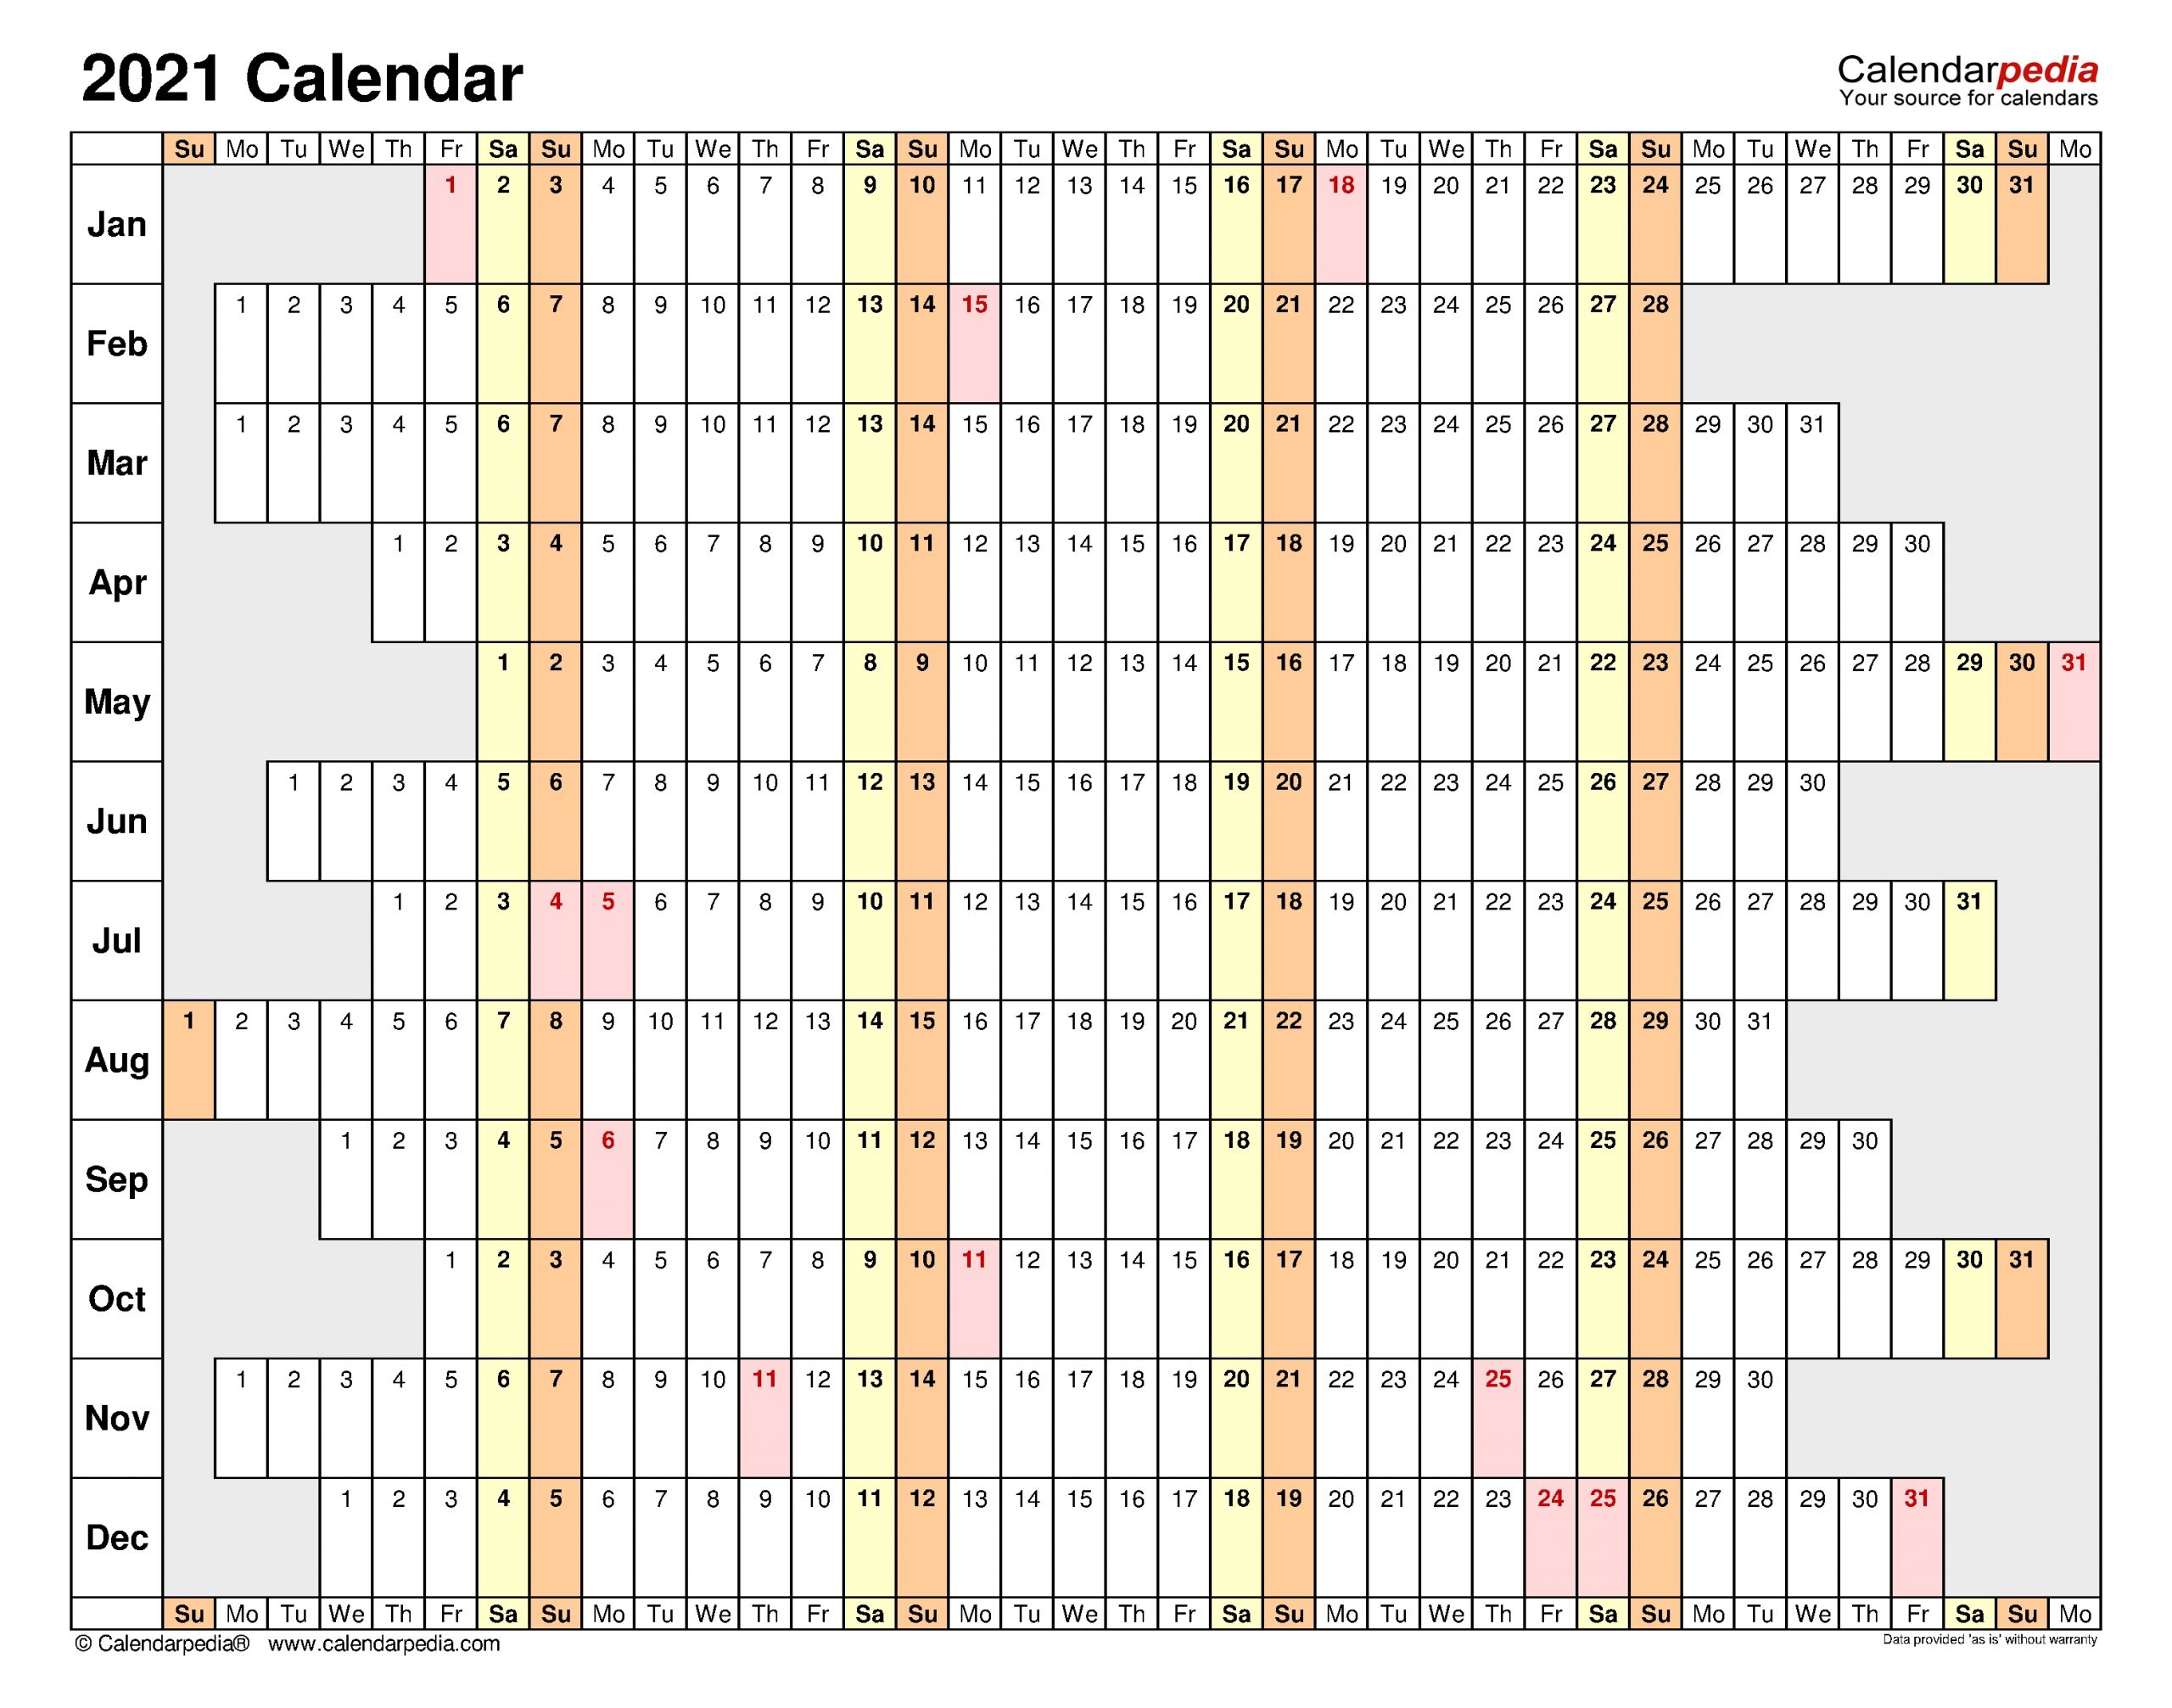 2021 Calendar - Free Printable Excel Templates - Calendarpedia-2021 Leave Planner Excel Template